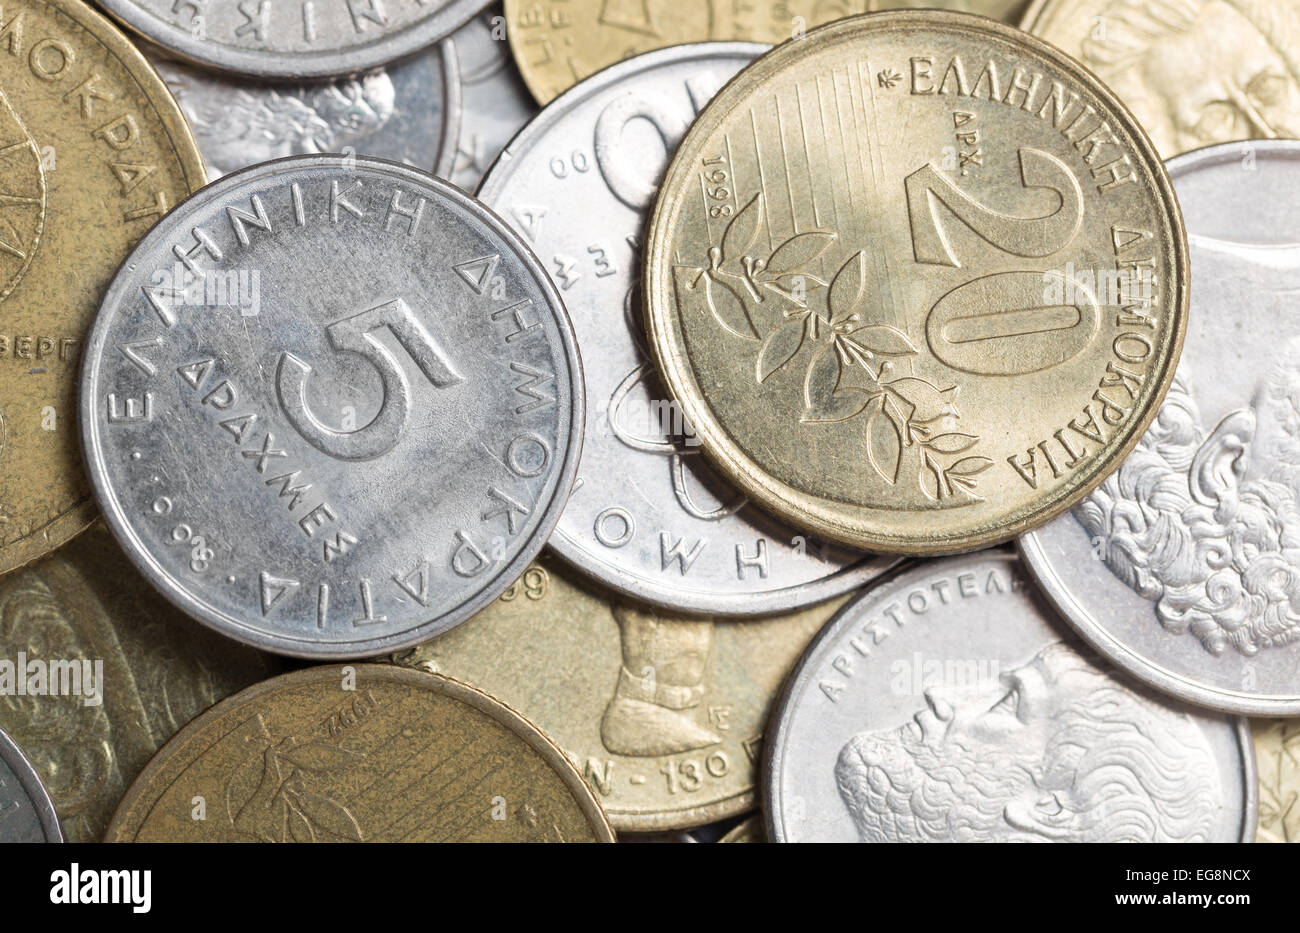 An assortment of Greek drachma coins from the 1990s - Stock Image